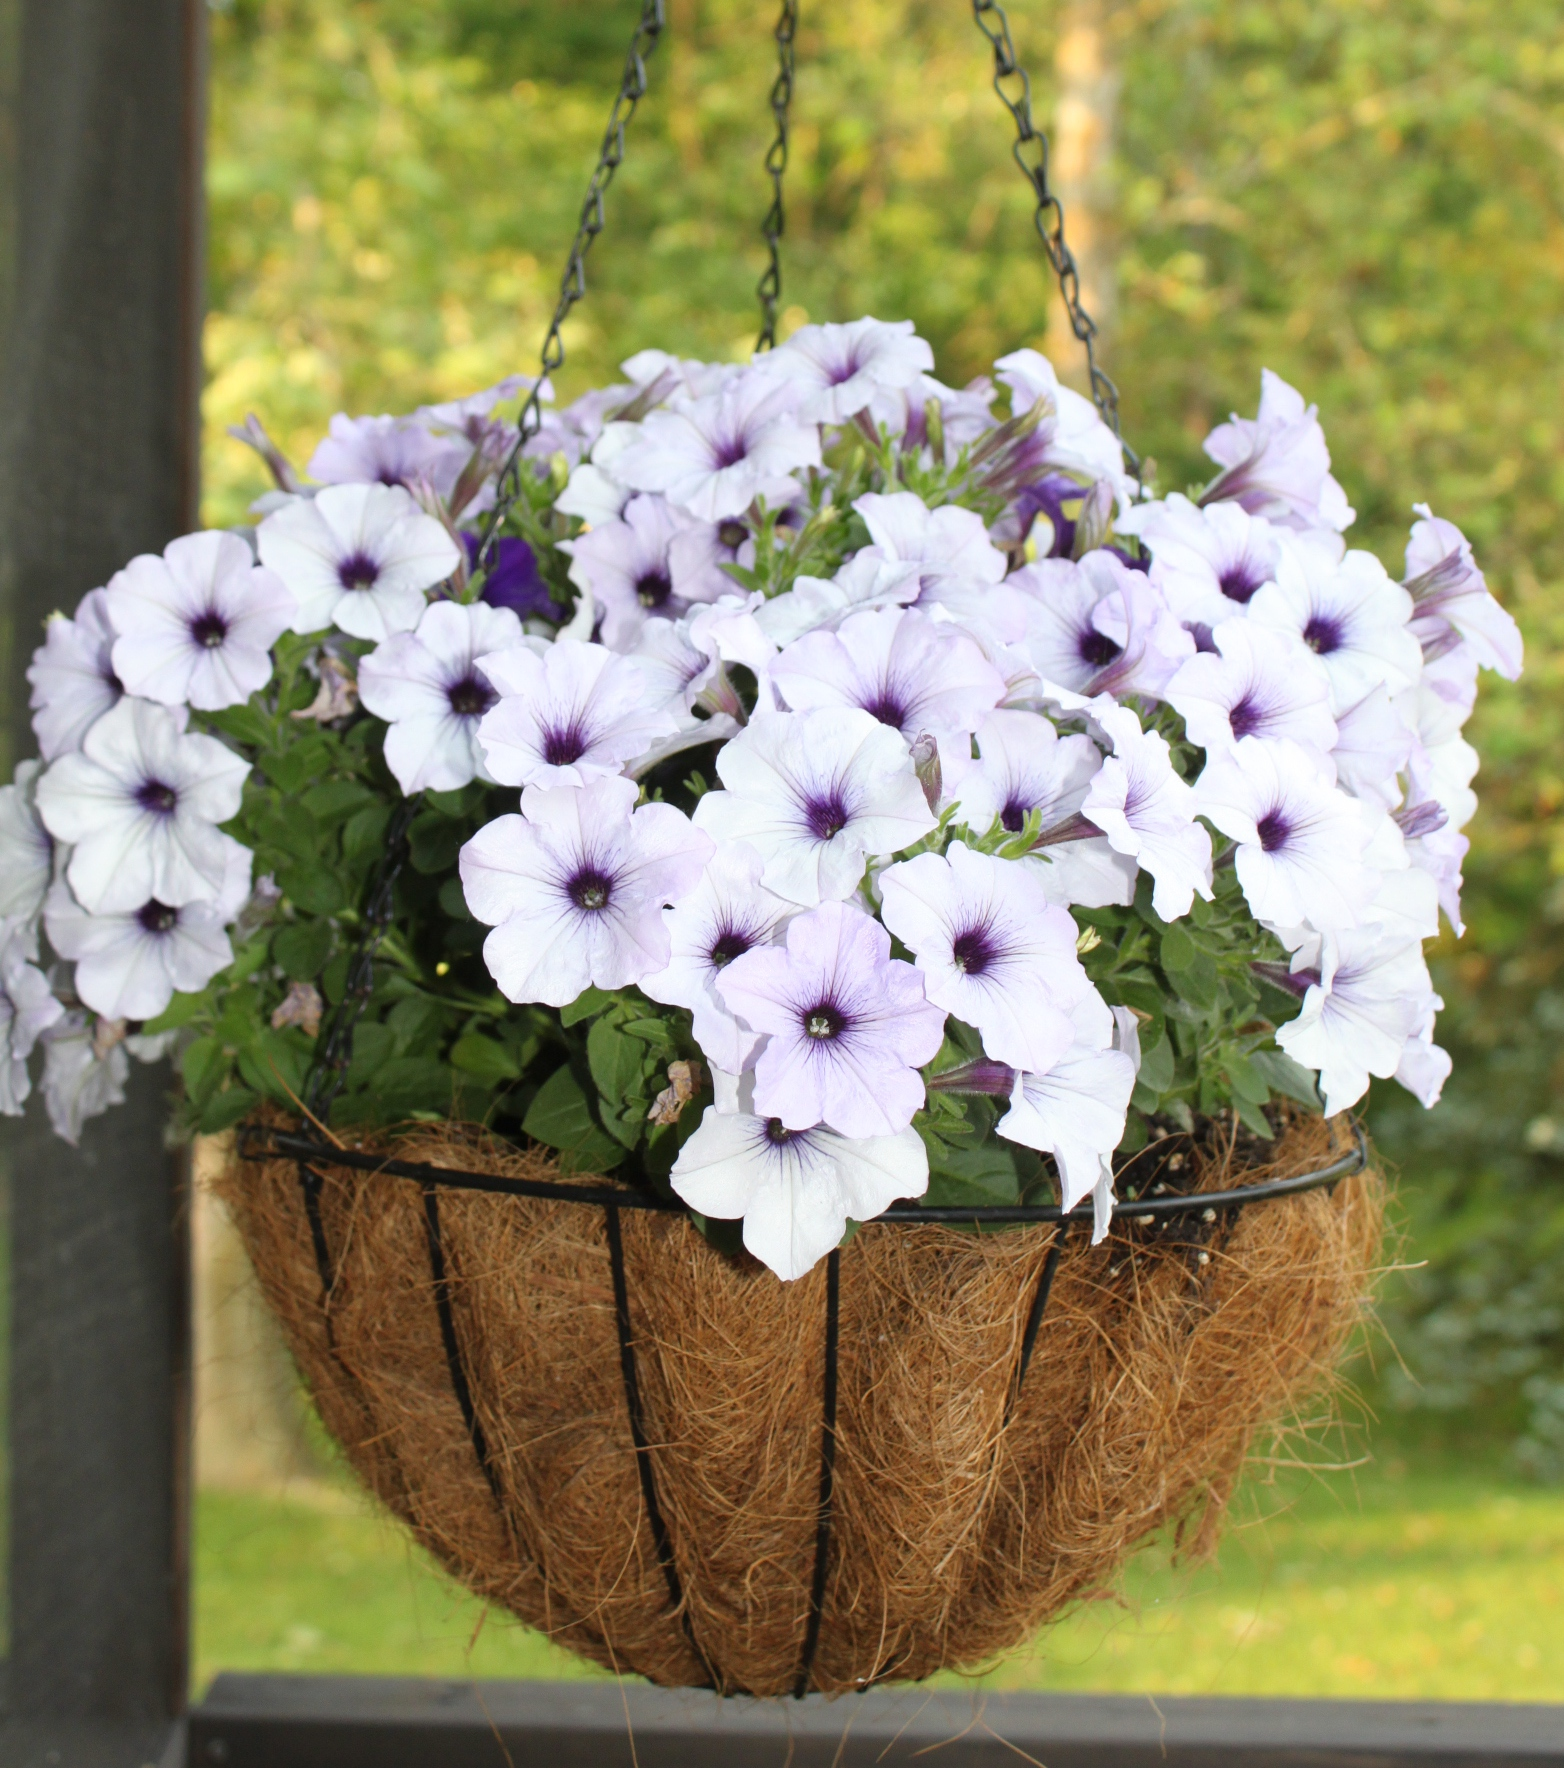 How To Make Super Soil From Summer's Hanging Baskets and Planters